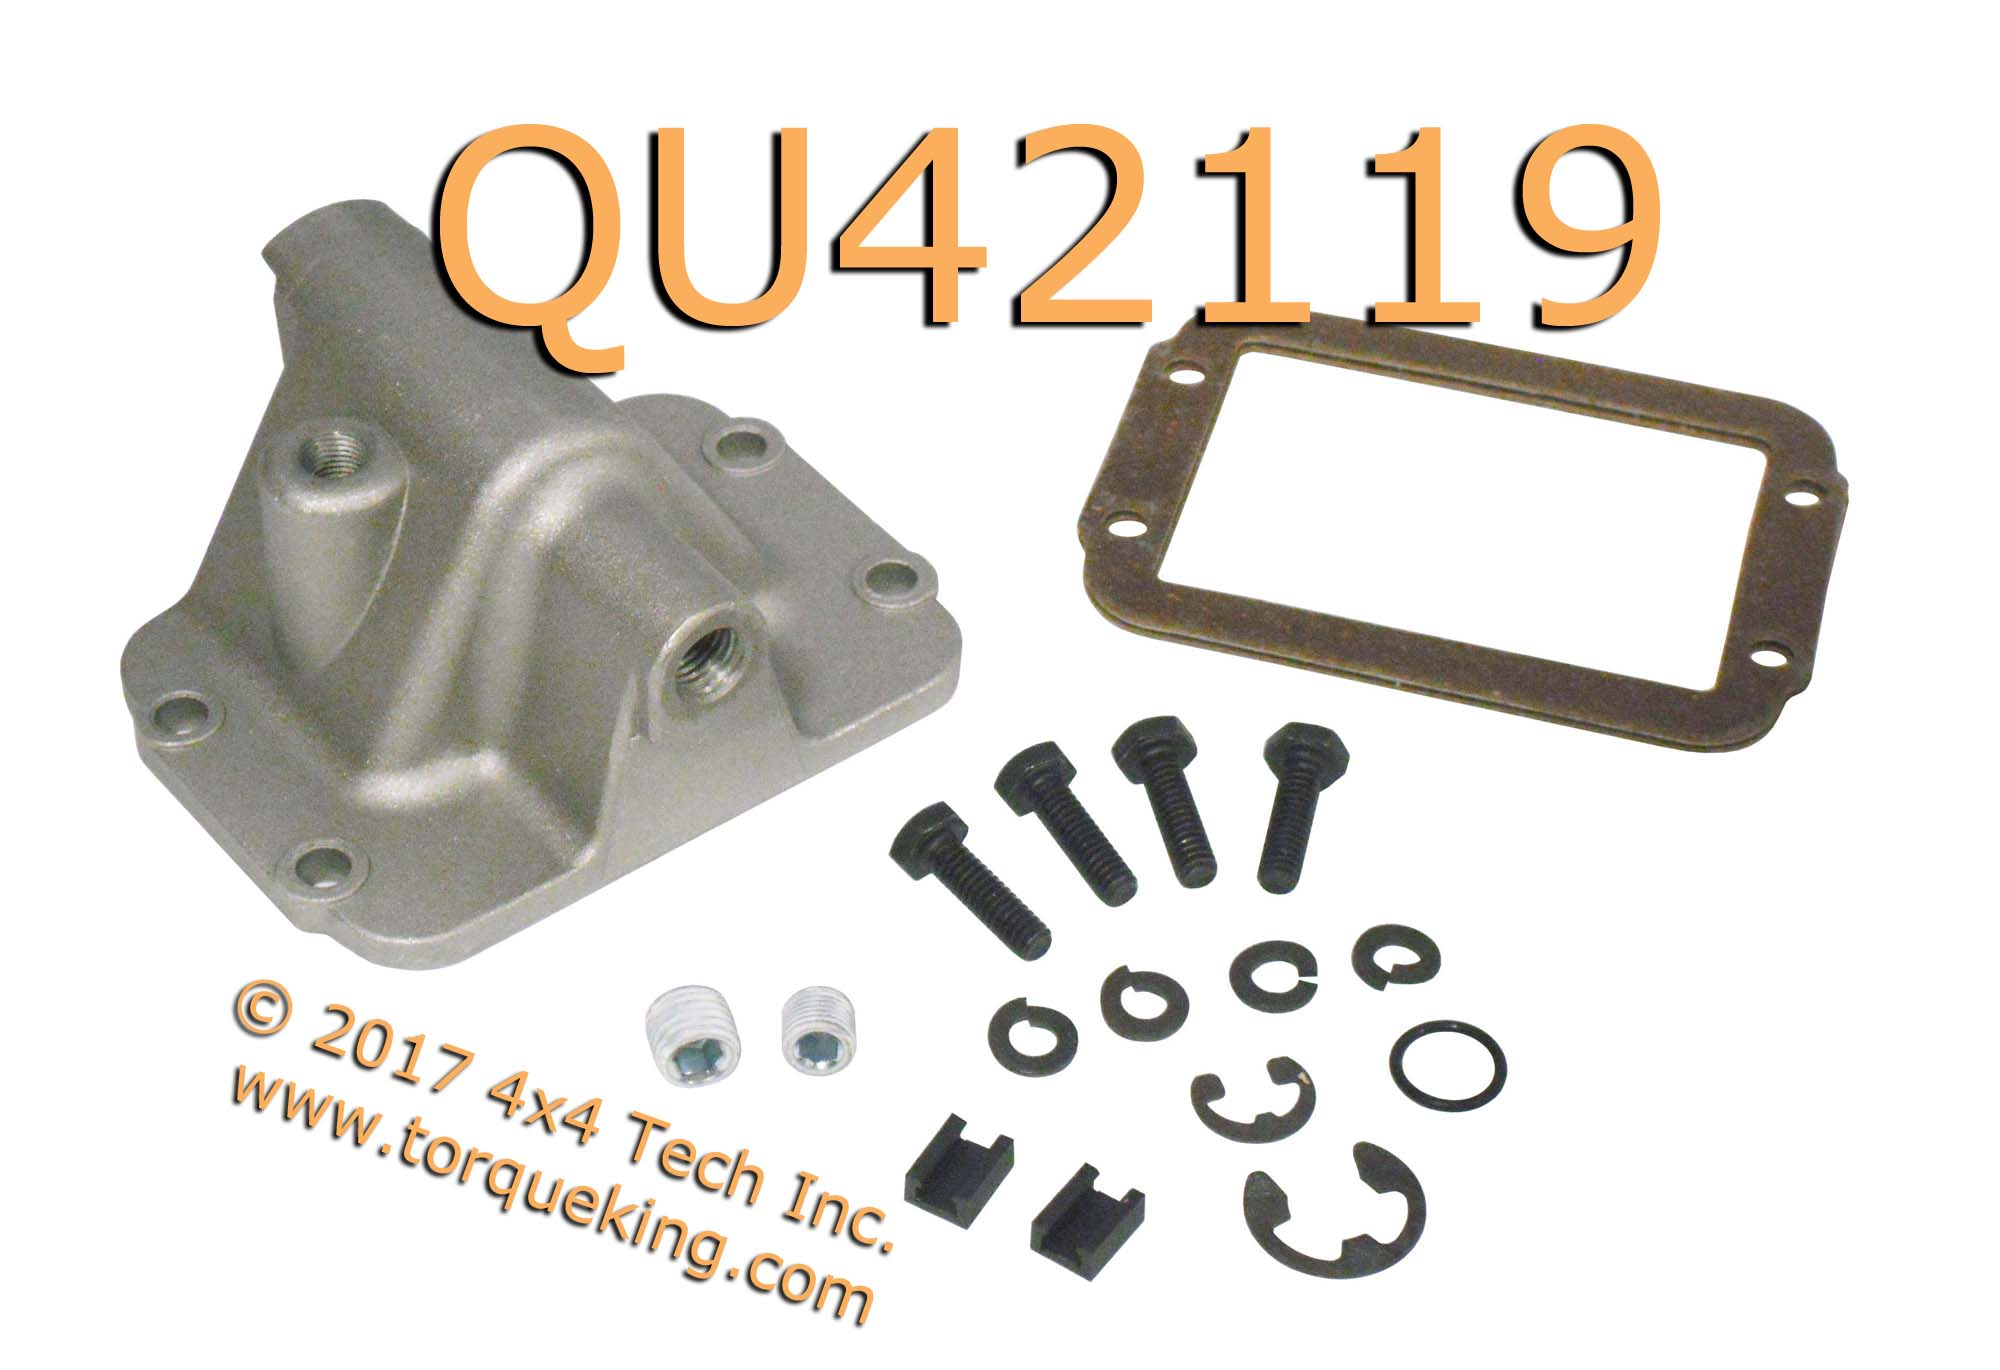 hight resolution of qu42119 replacement cad axle shift housing kit aluminum housing is used to replace broken or damaged housings on your heavy duty ram fits all 1994 dodge